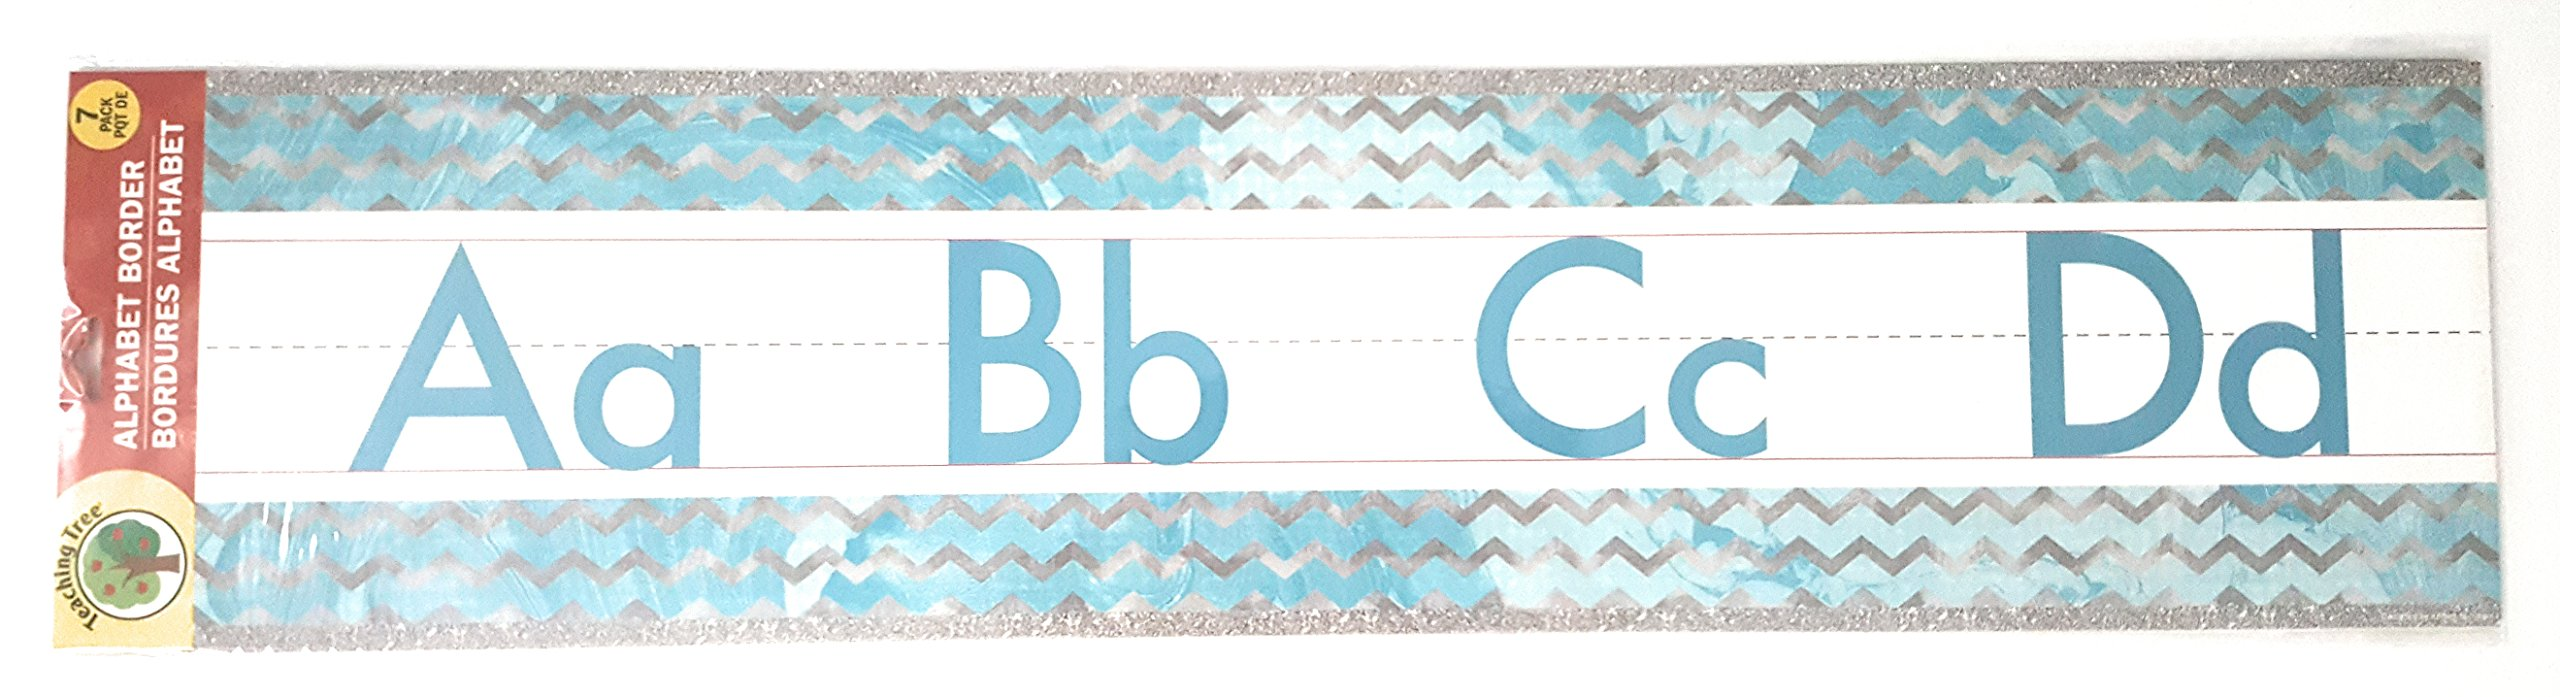 Teaching Tree Manuscript Alphabet Bulletin Back to School Board Creative Strips School Office Resources Scholastic Teacher Teacher's Bulletin Trim Wall Border Decal Classroom Decoration Blue Zigzag